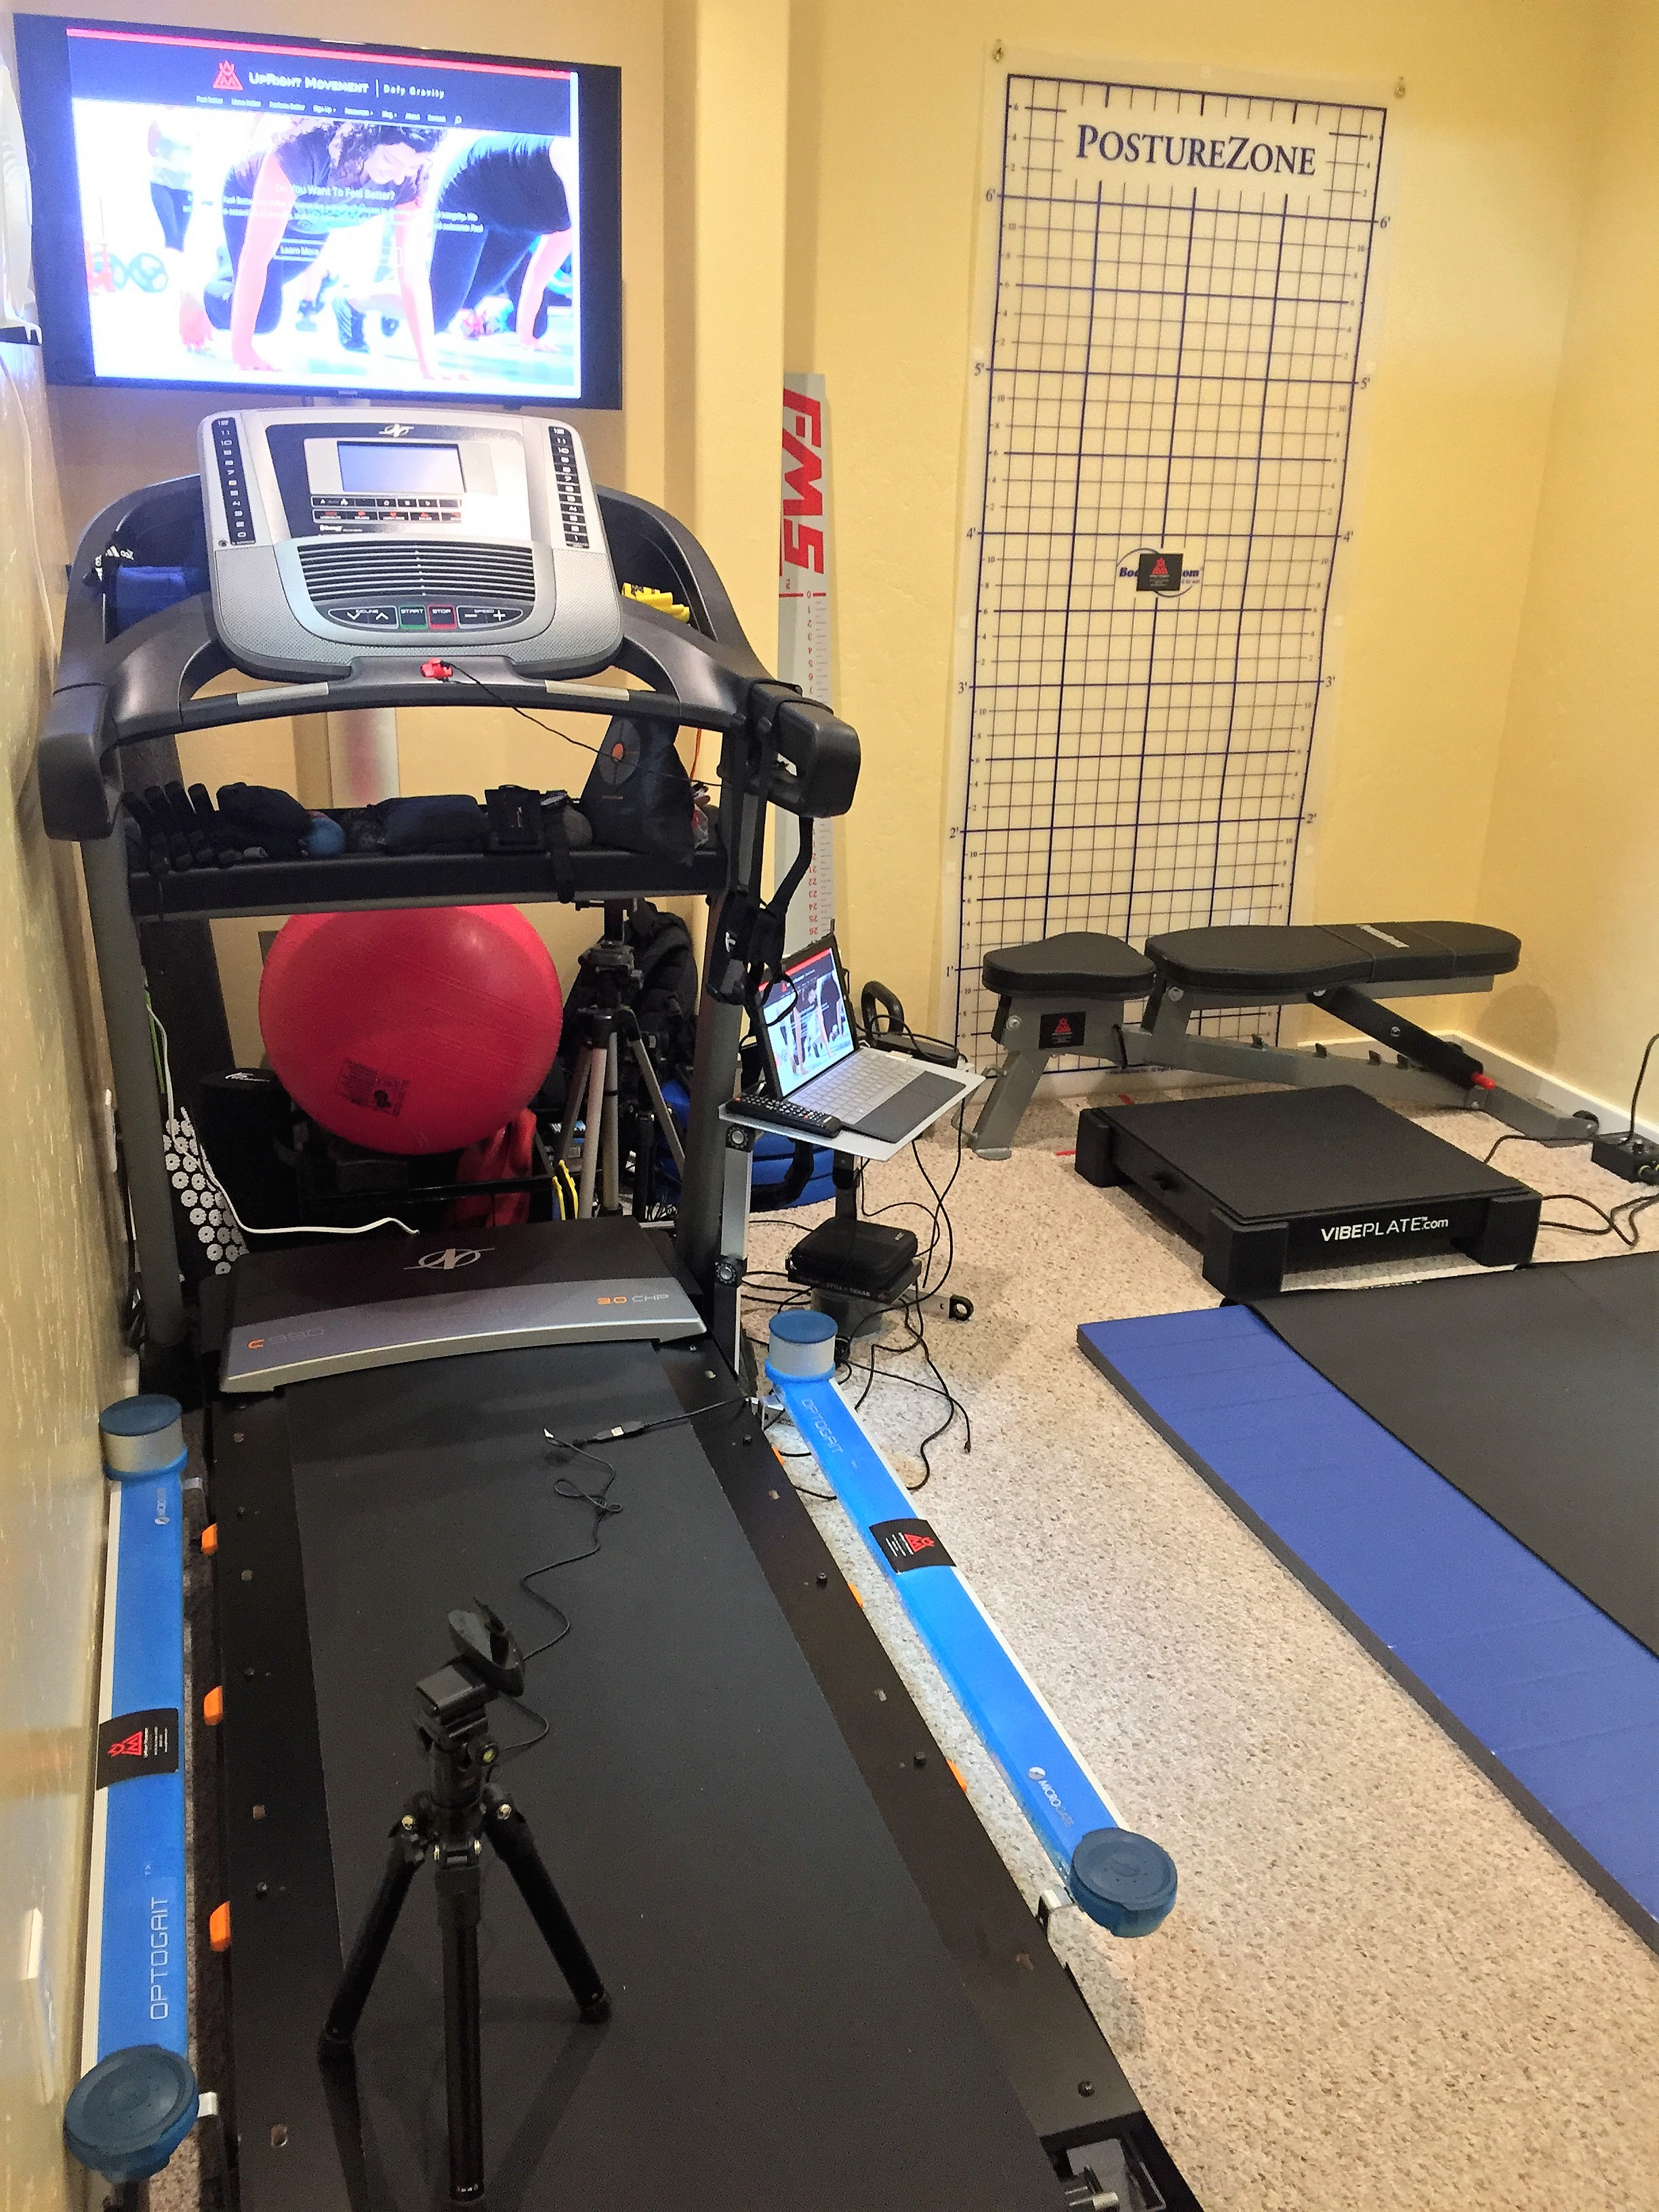 Movement Signature Room: Feel Better Move Better Perform Better